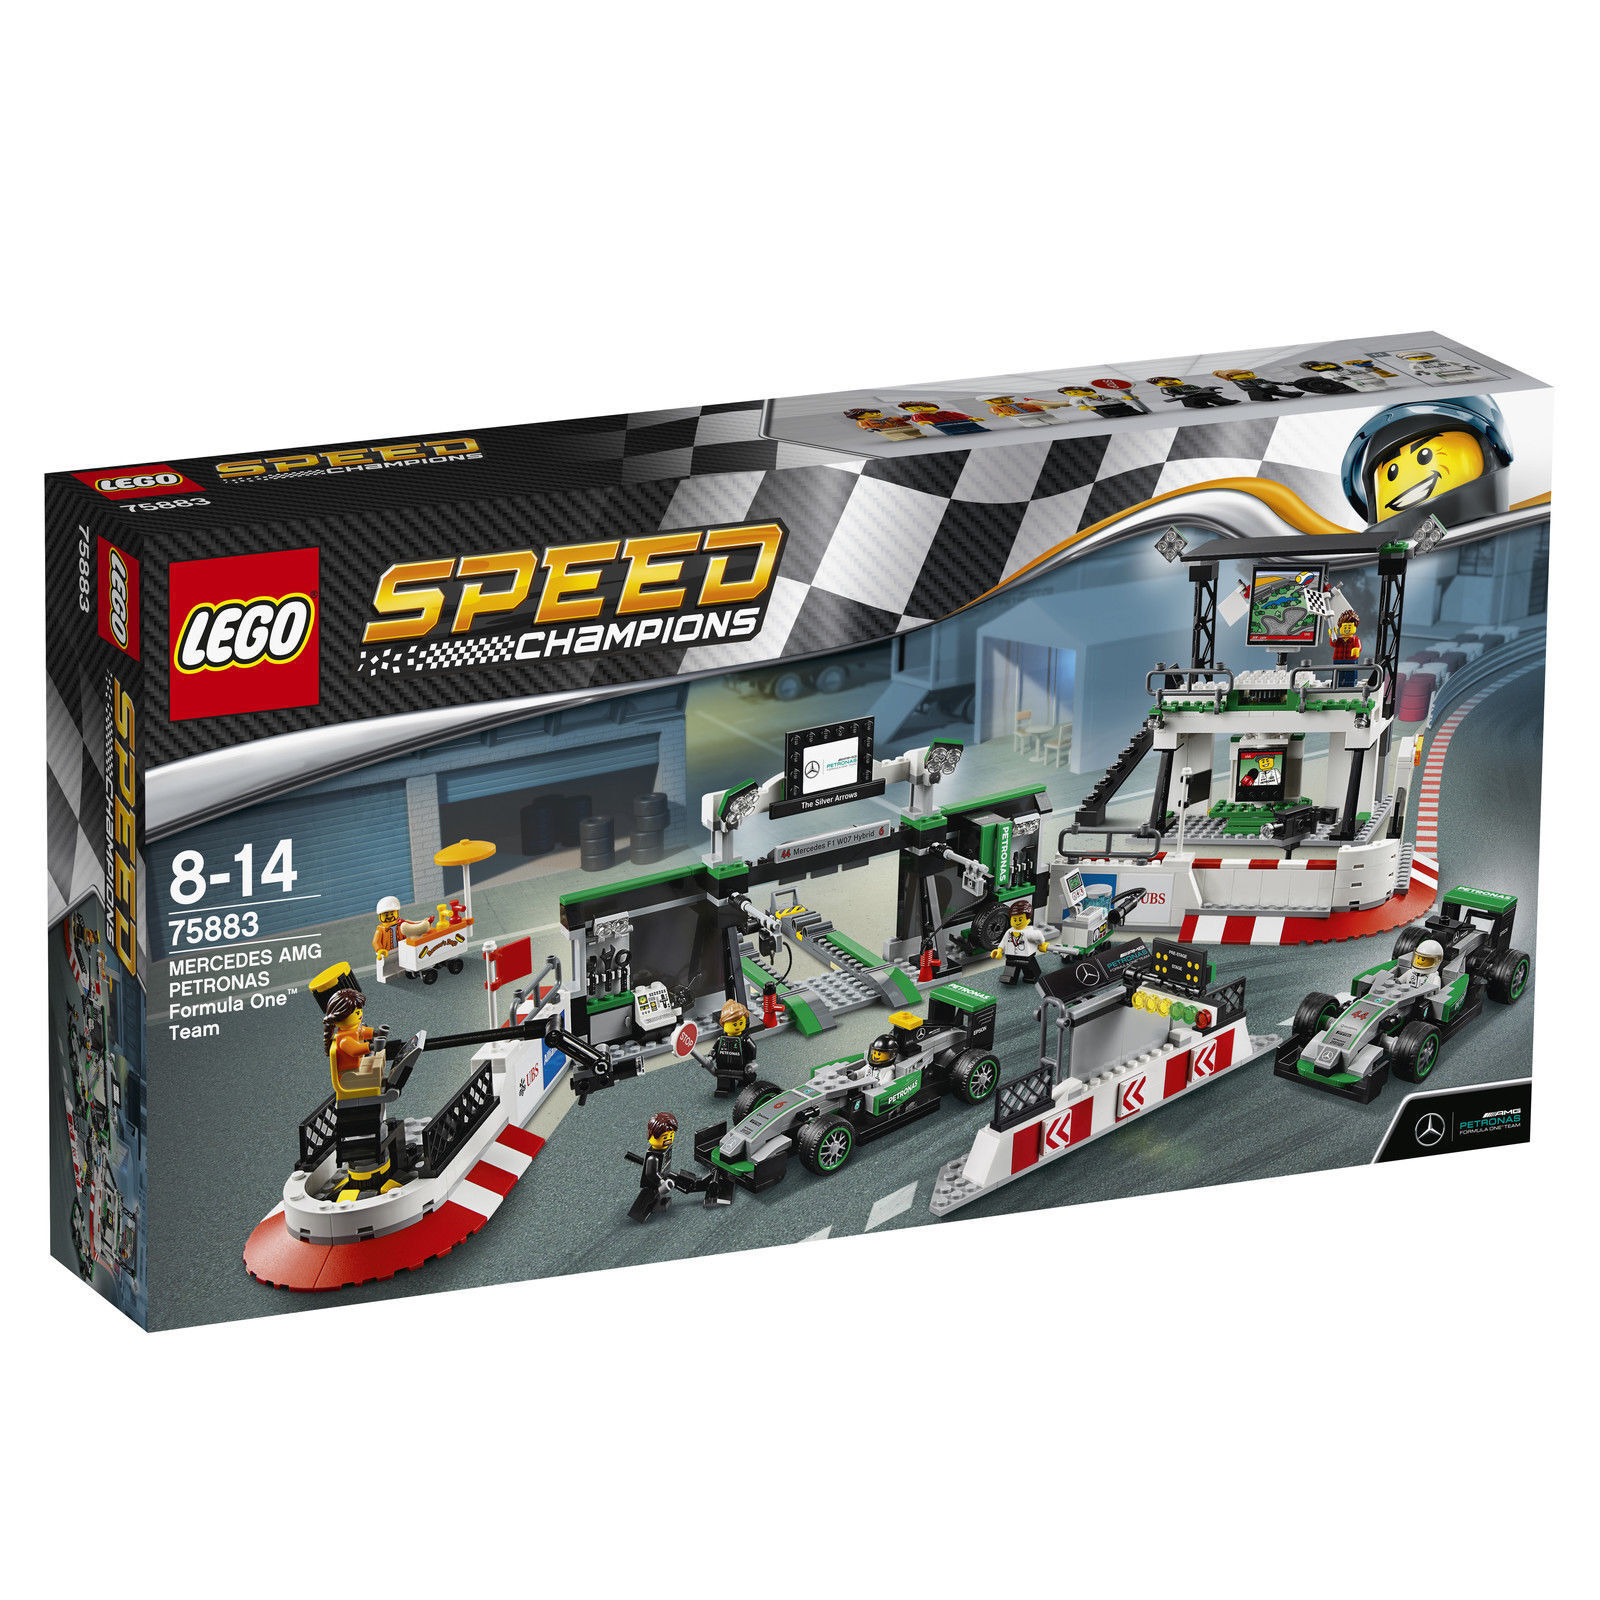 LEGO Speed Champions MERCEDES AMG PETRONAS Formula One Team 75883 NEU OVP